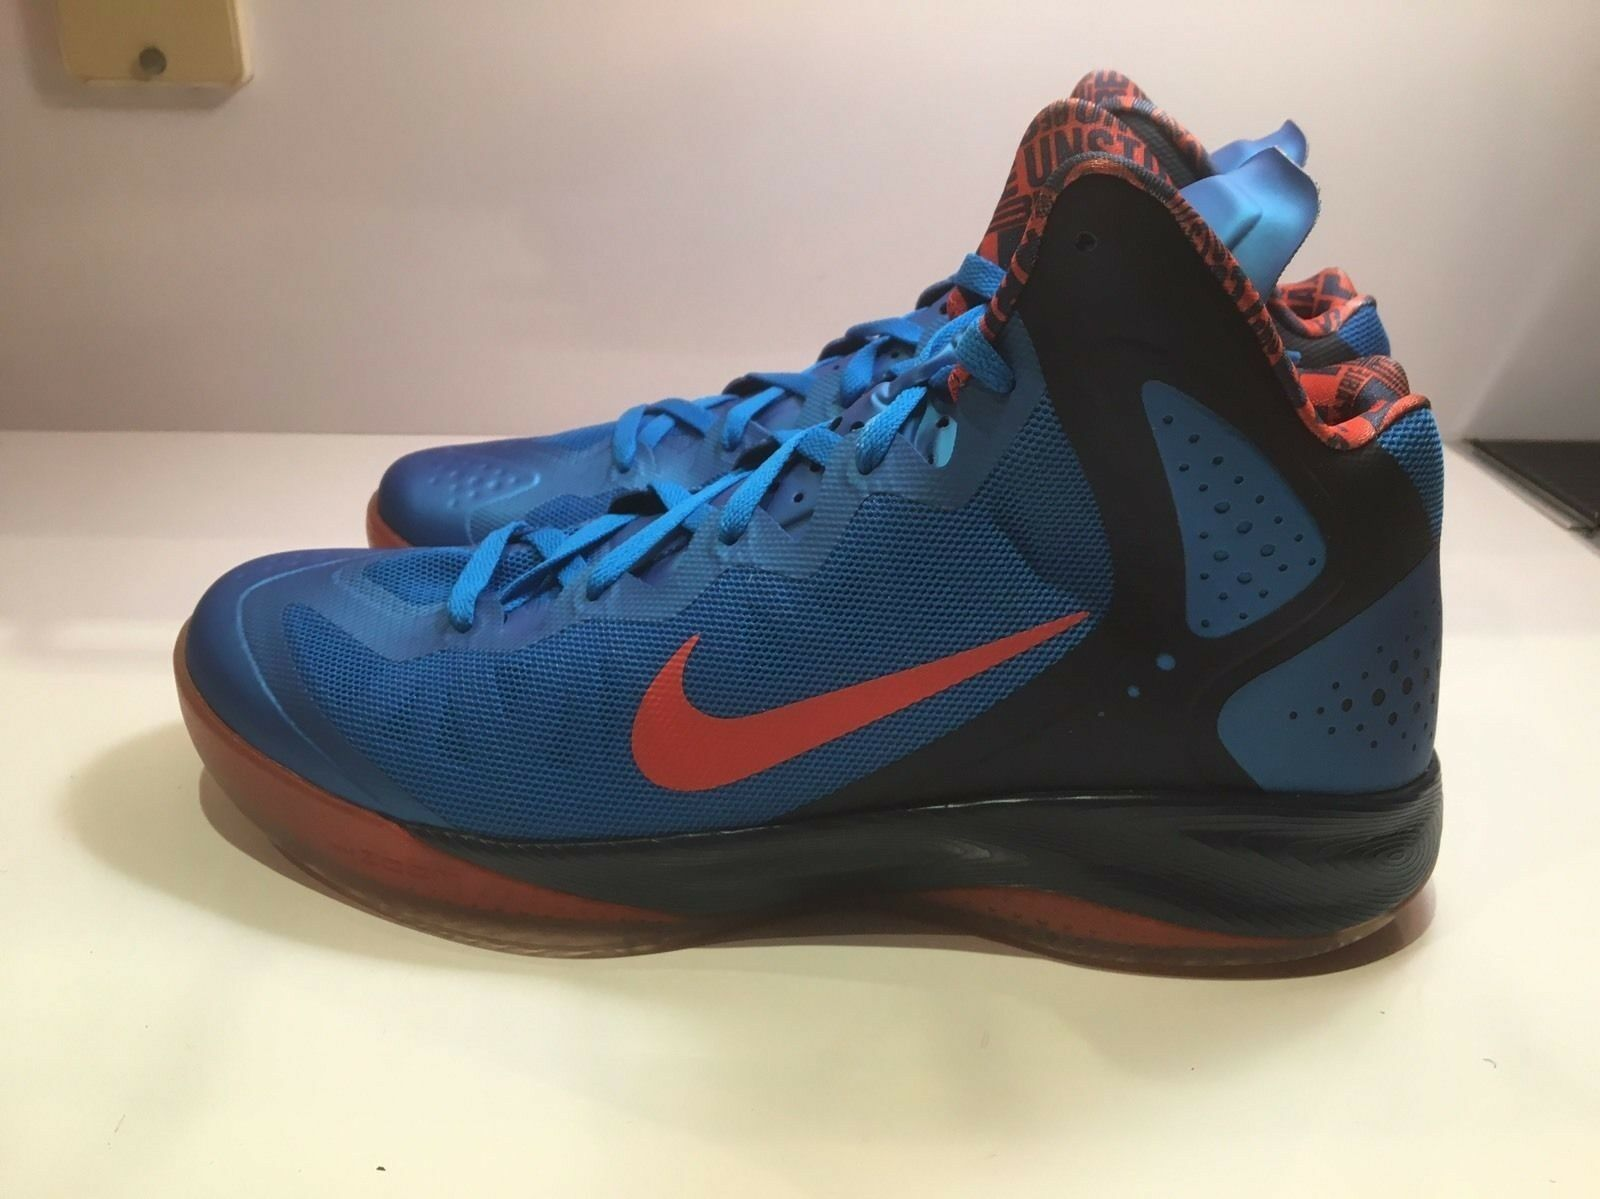 NIKE ZOOM HYPERENFORCER PE  OKC RUSSELL WESTBROOK  487655-402 CHOOSE YOUR SIZE